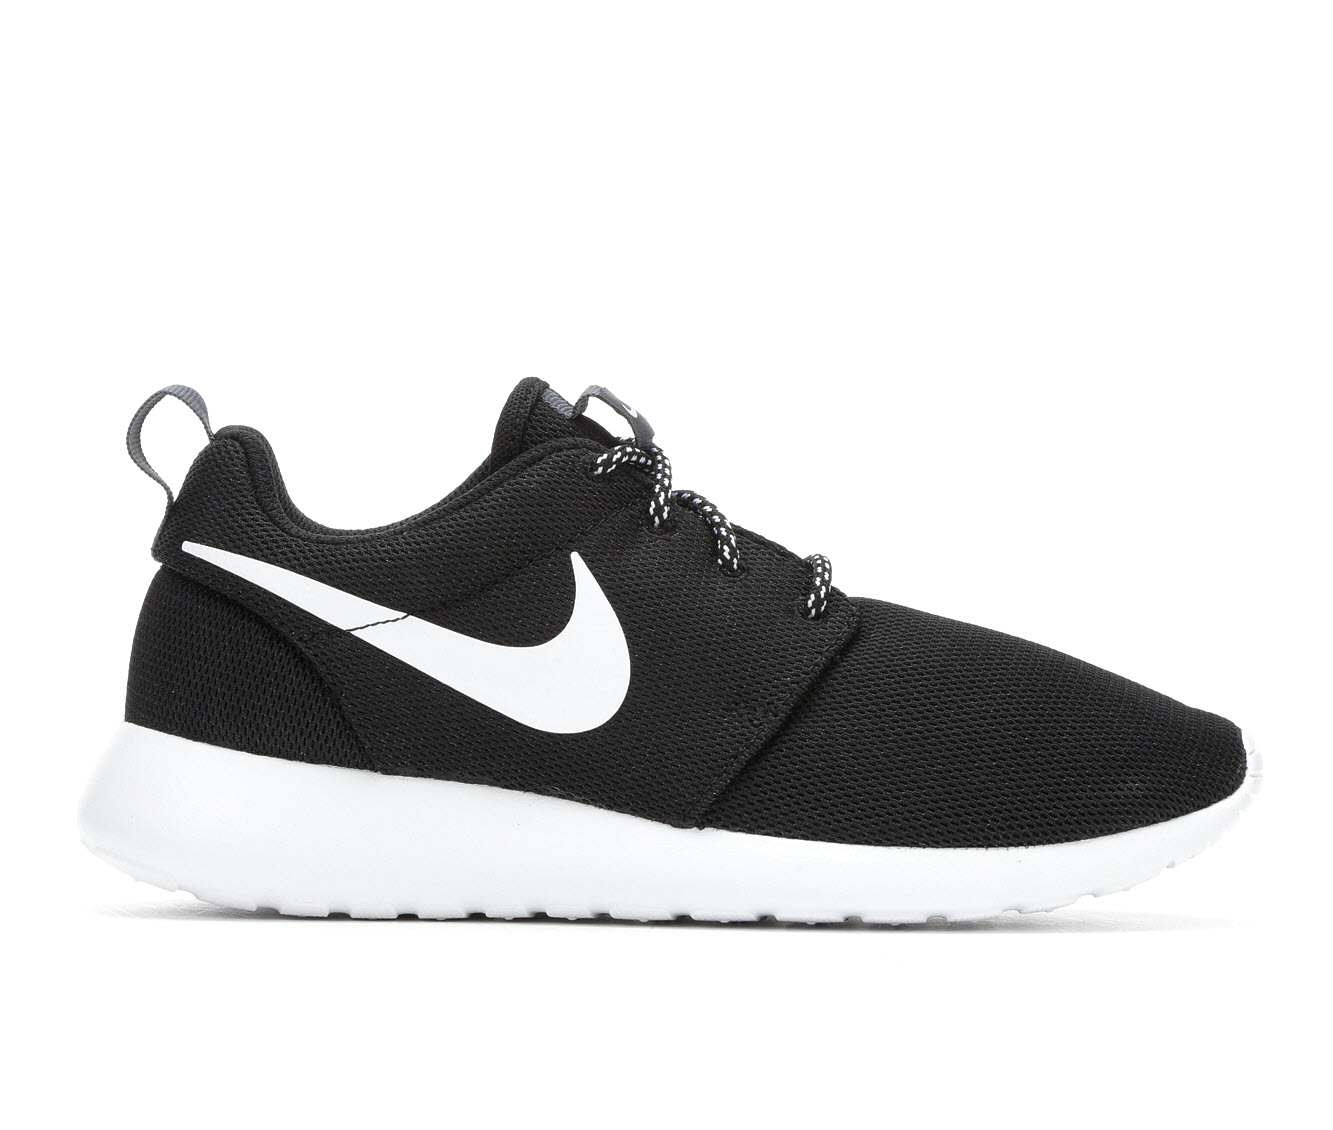 Nike Roshe One Women's Athletic Shoe (Black)